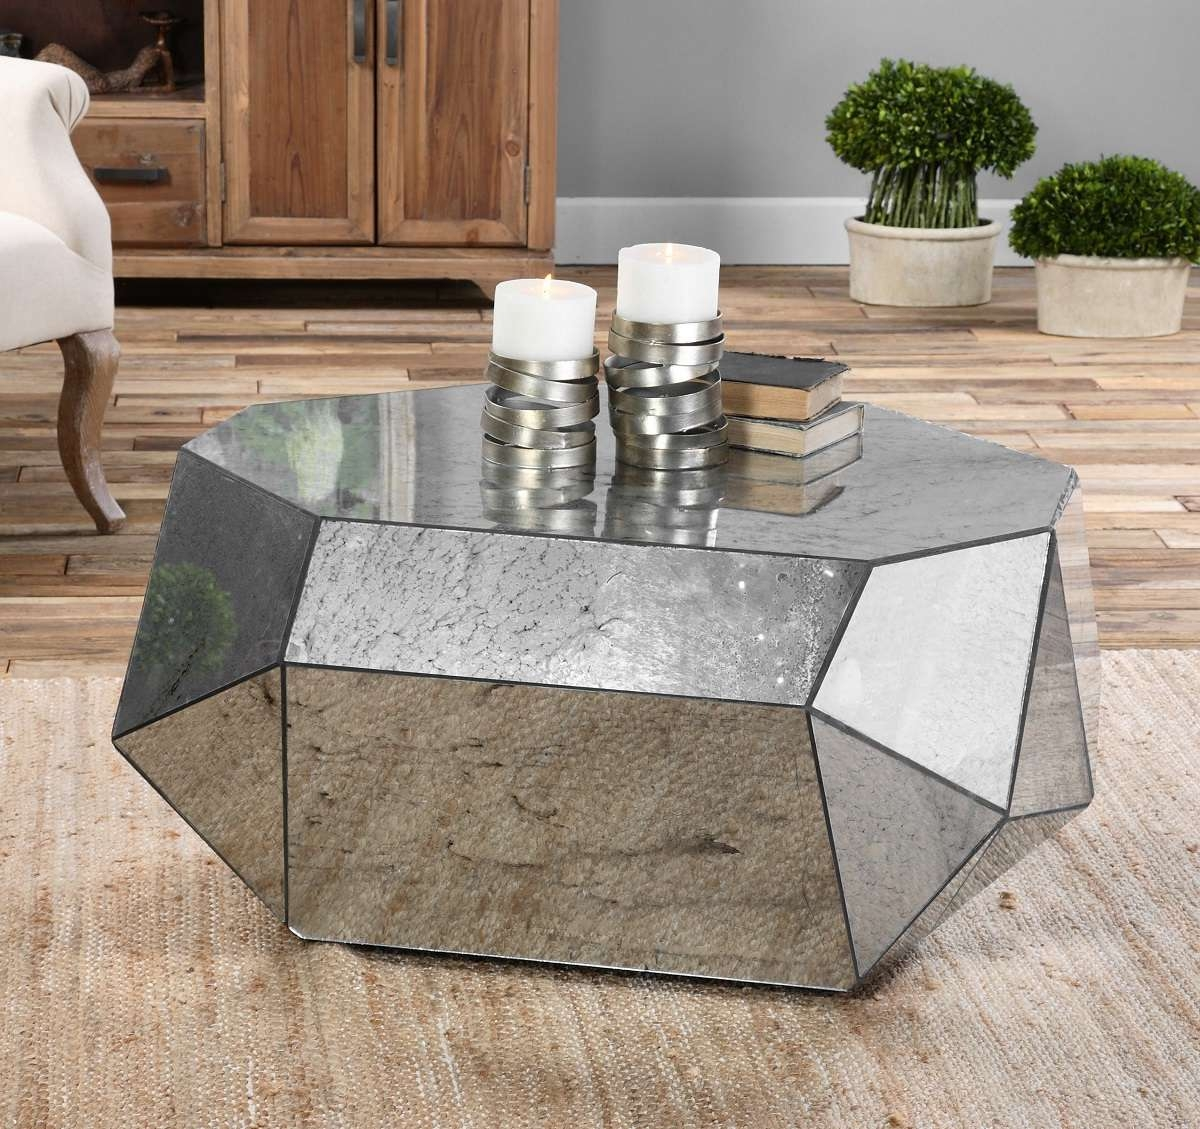 Well Known Small Mirrored Coffee Tables Intended For The Mirrored Coffee Table For Cafe And Apartment (View 3 of 20)